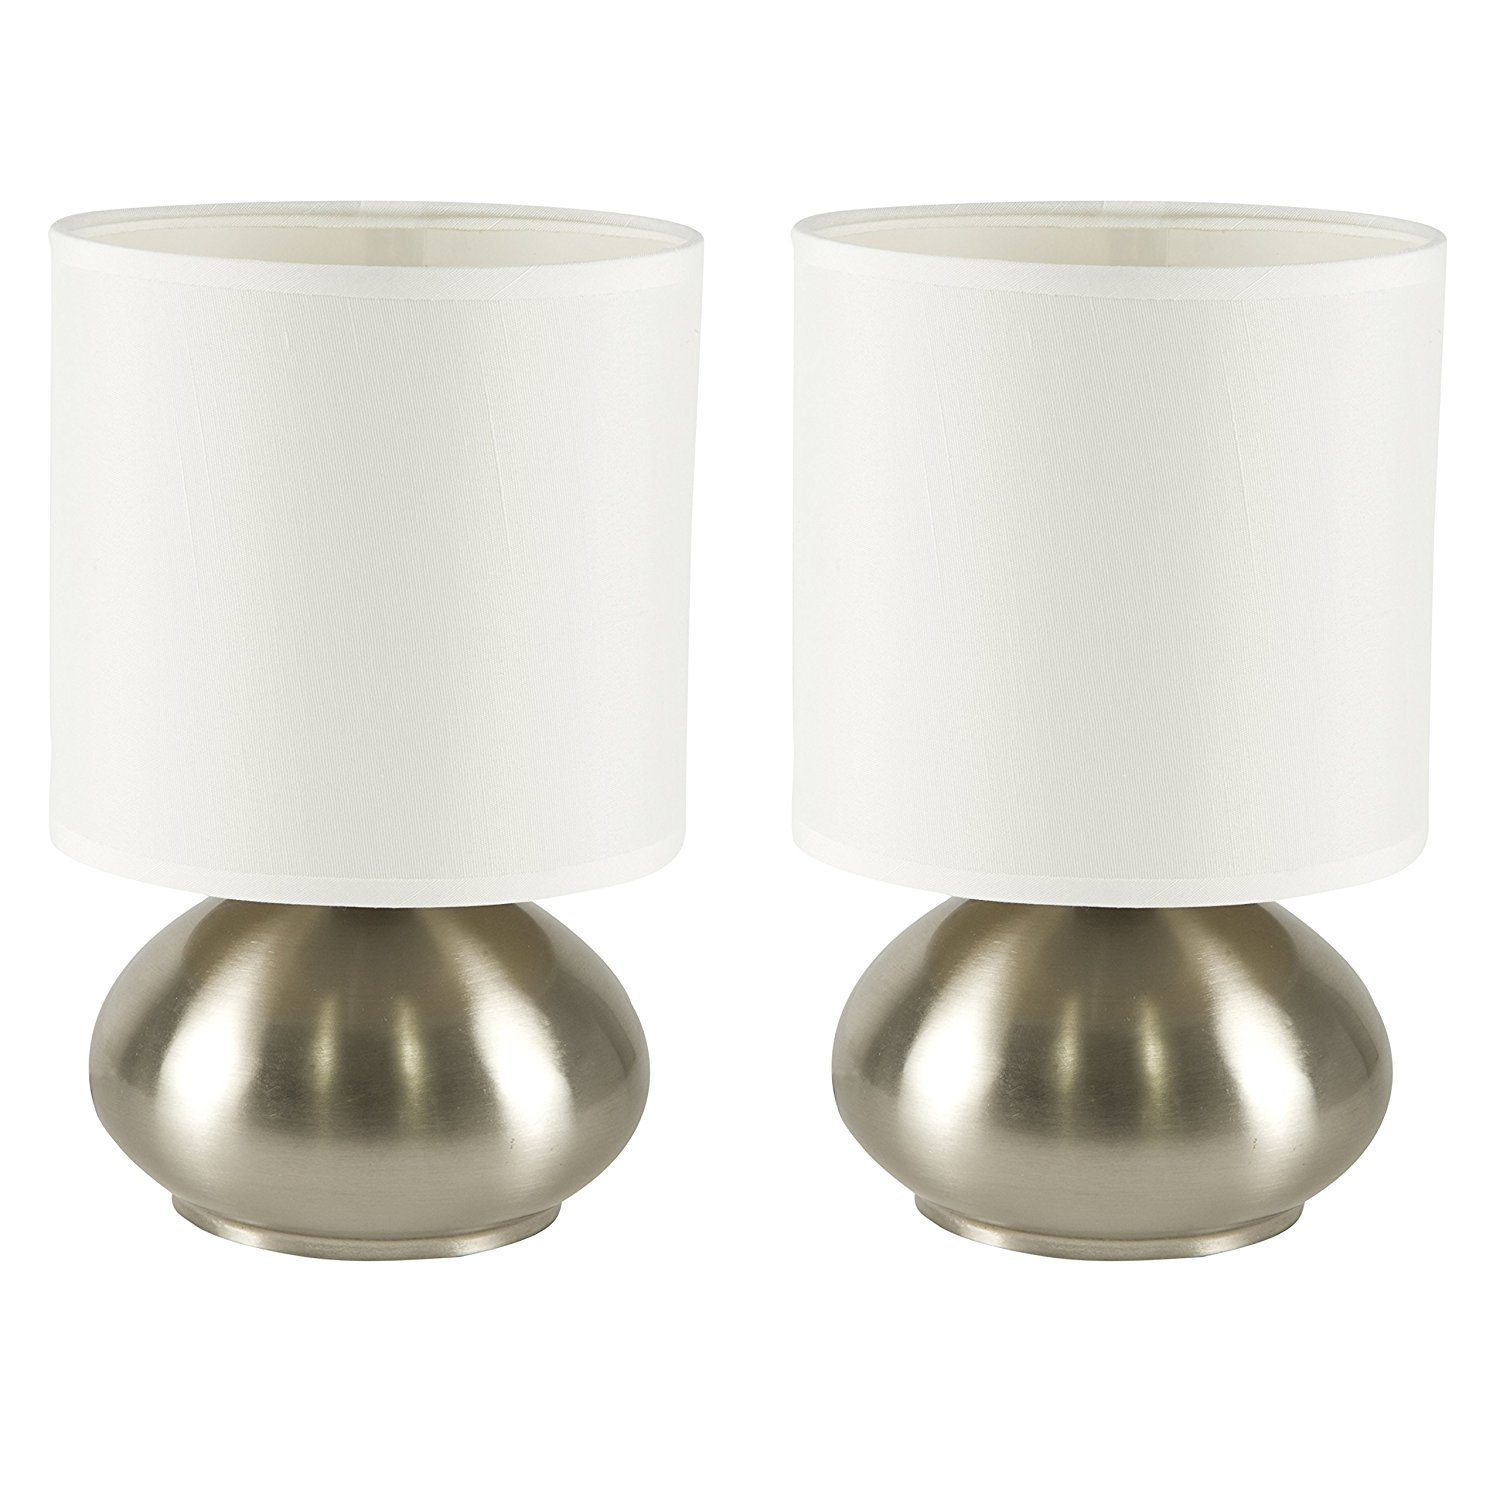 Awesome side table lamps for bedroom light accents touch table lamps brushed nickel with fabric shades and  3-stage cmjzqoq